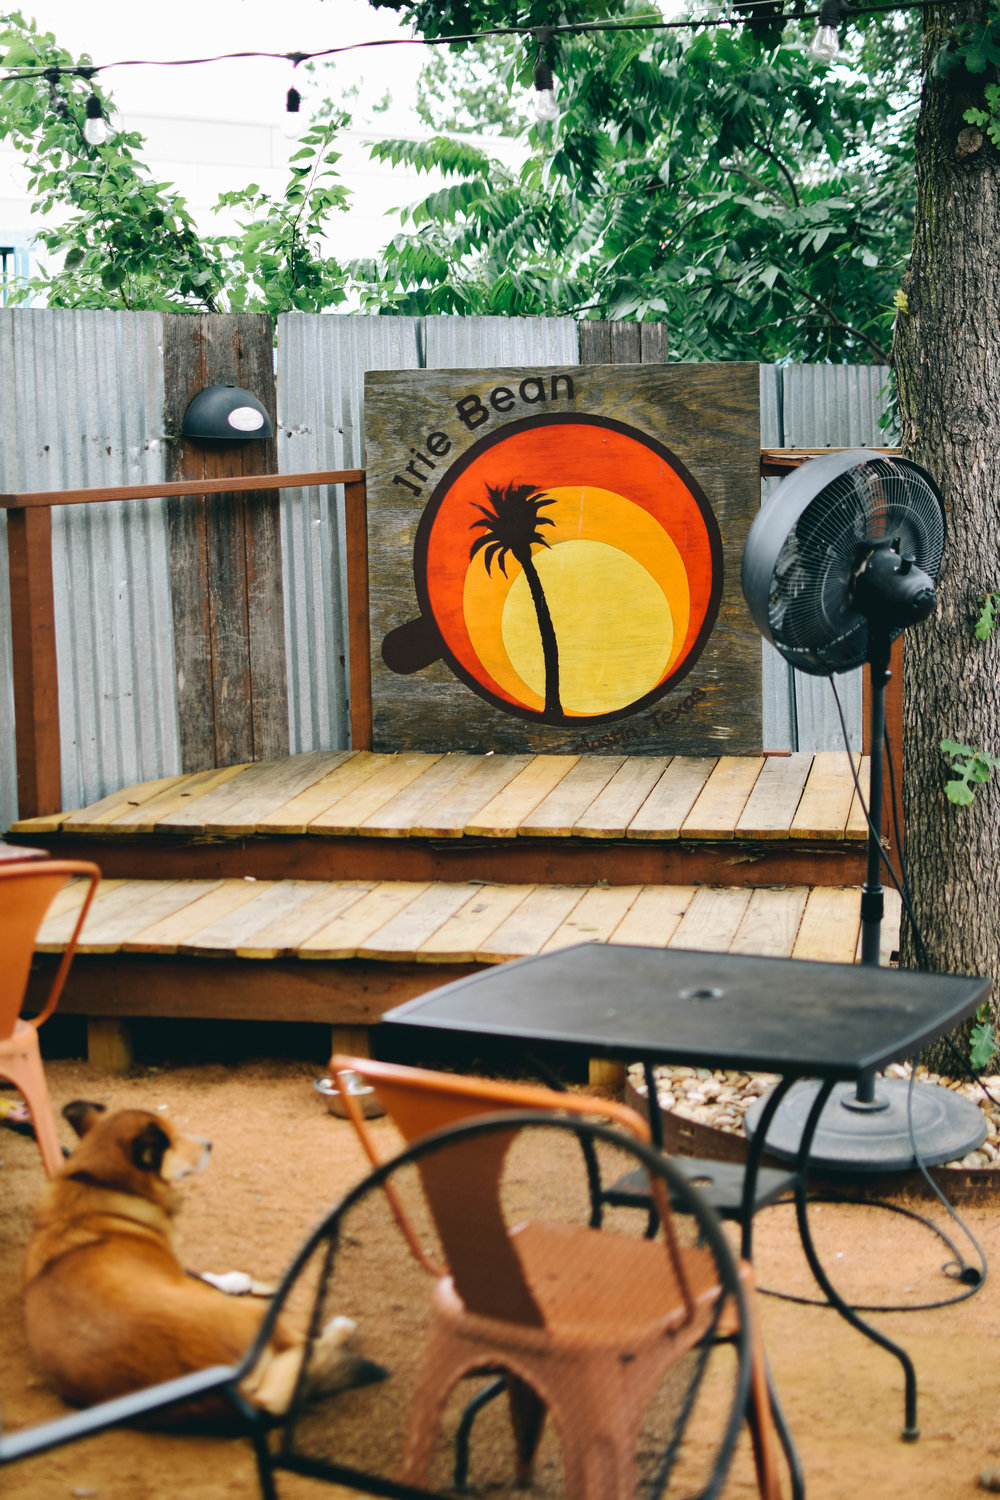 Irie Bean's outdoor stage.